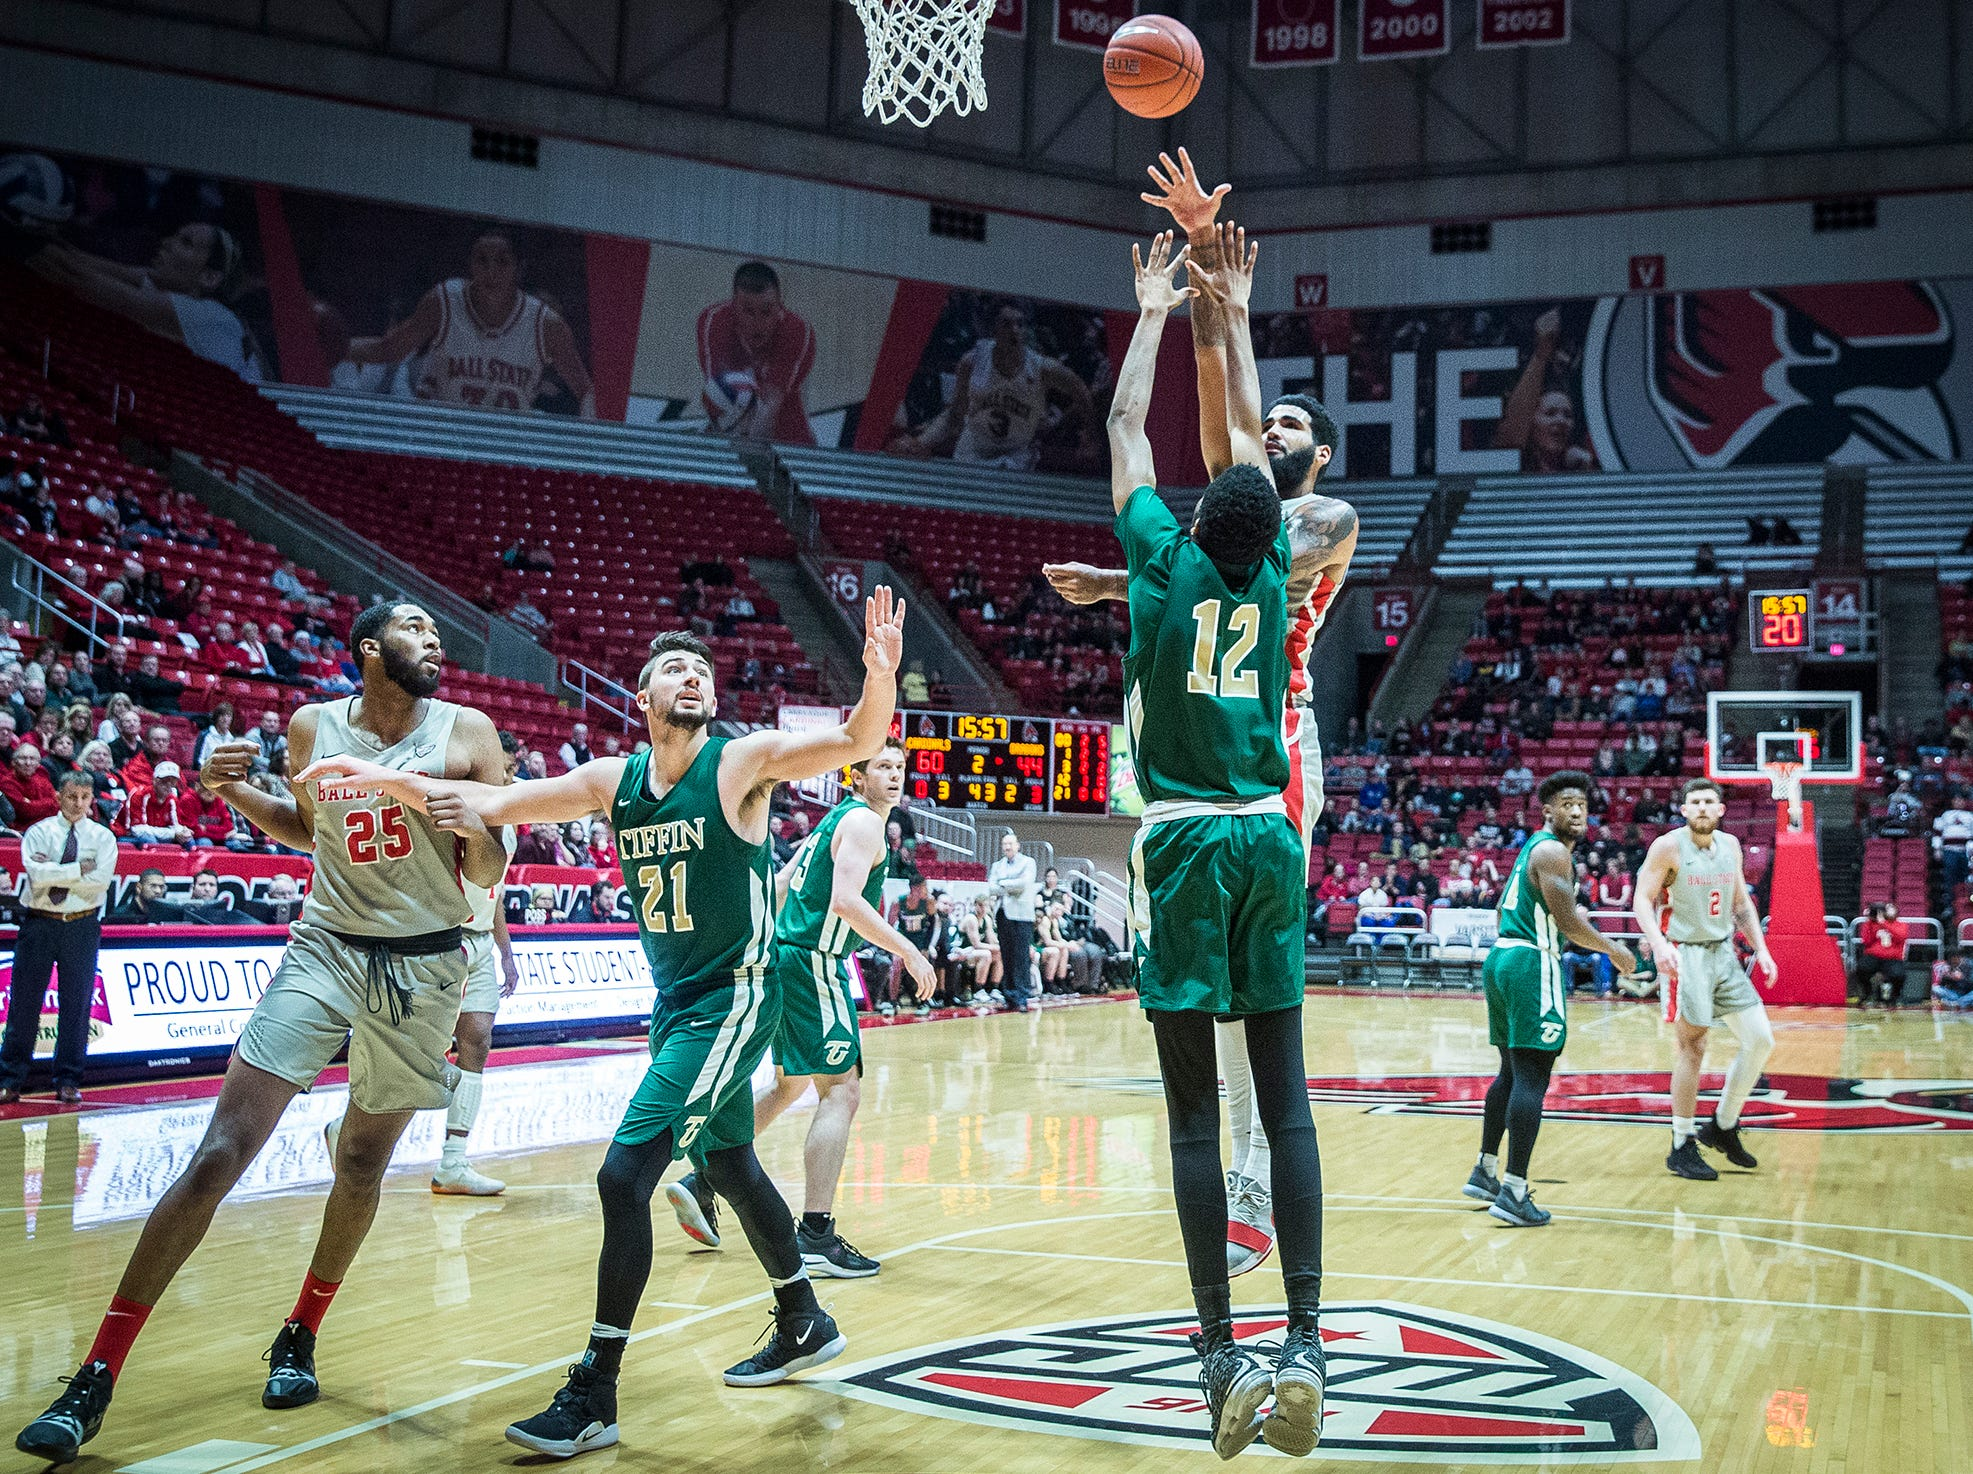 Ball State defeated Tiffin during their game at Worthen Arena Tuesday, Nov. 27, 2018.